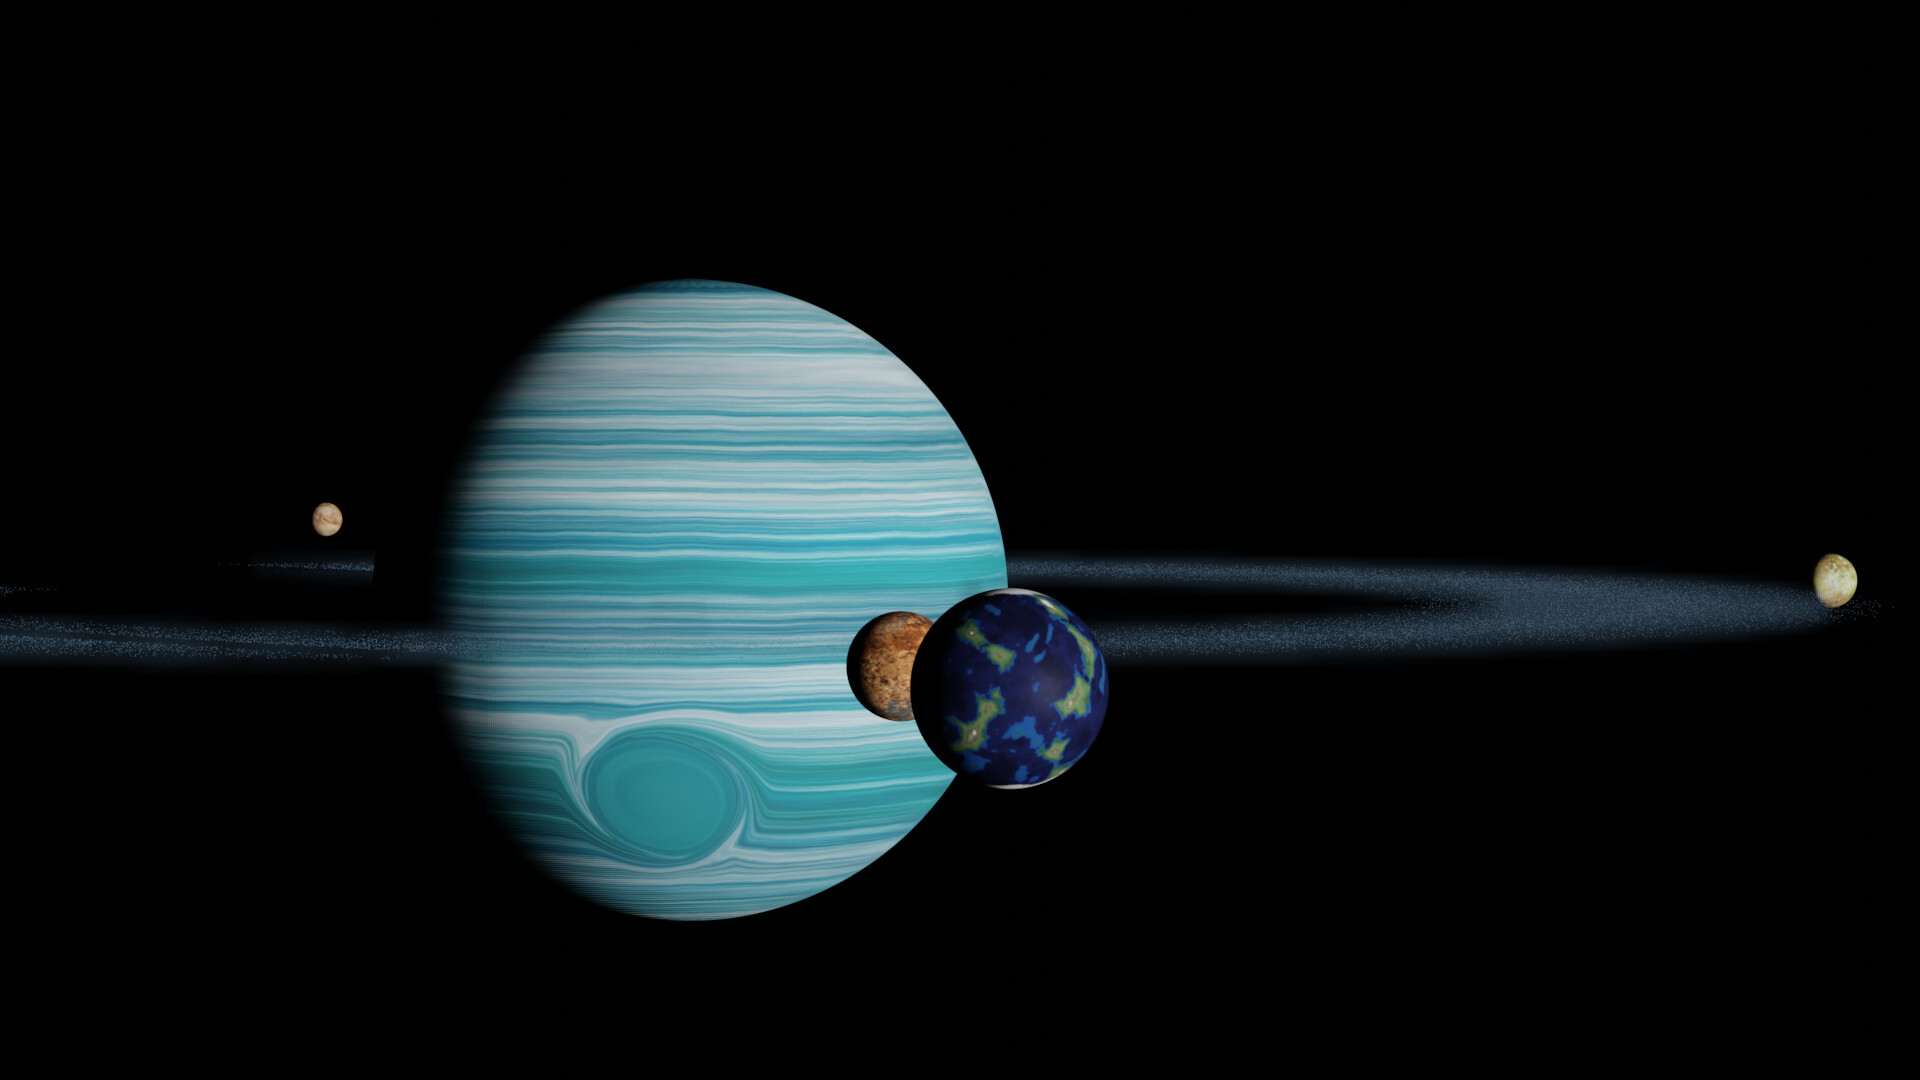 Shinseiko kuromatsu awesome gas giant roid rings 5 with volumetric dust and moons